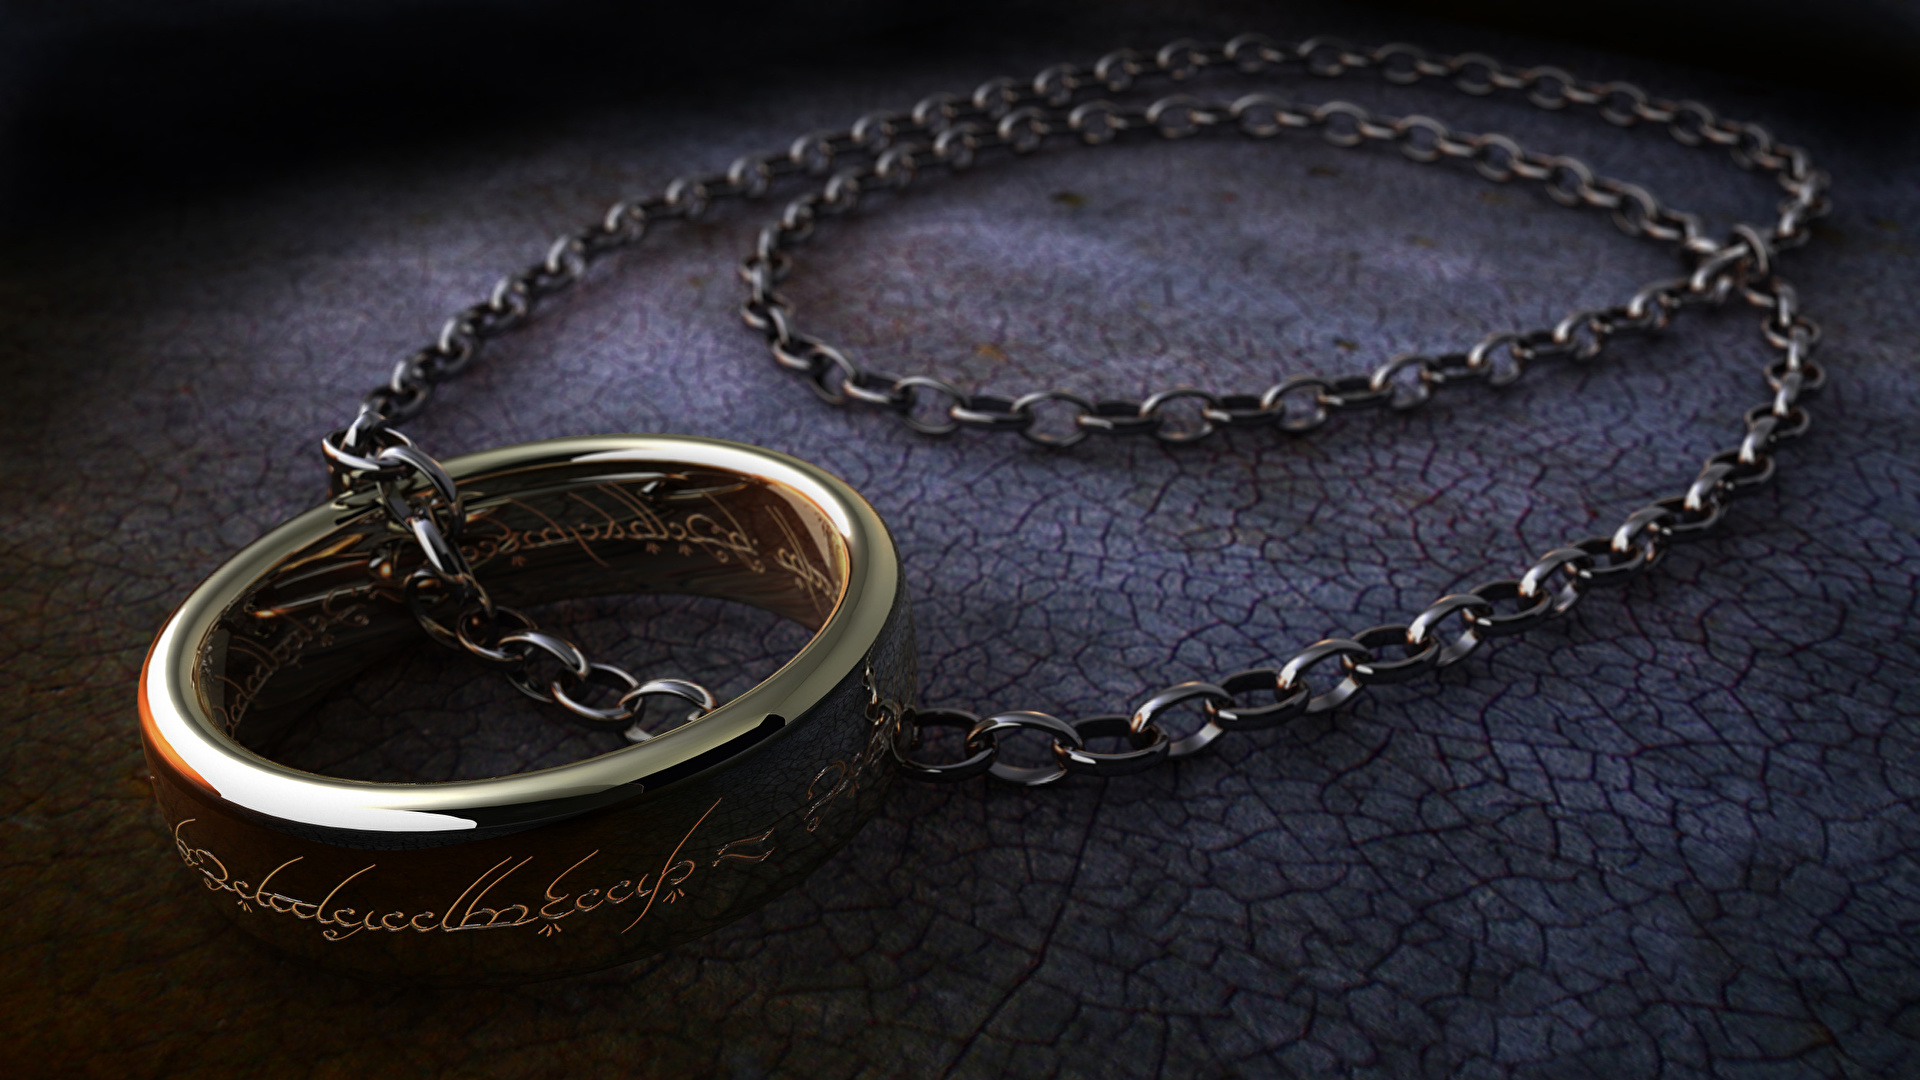 Picture The Lord of the Rings Ring Chain Movies 1920x1080 film jewelry ring